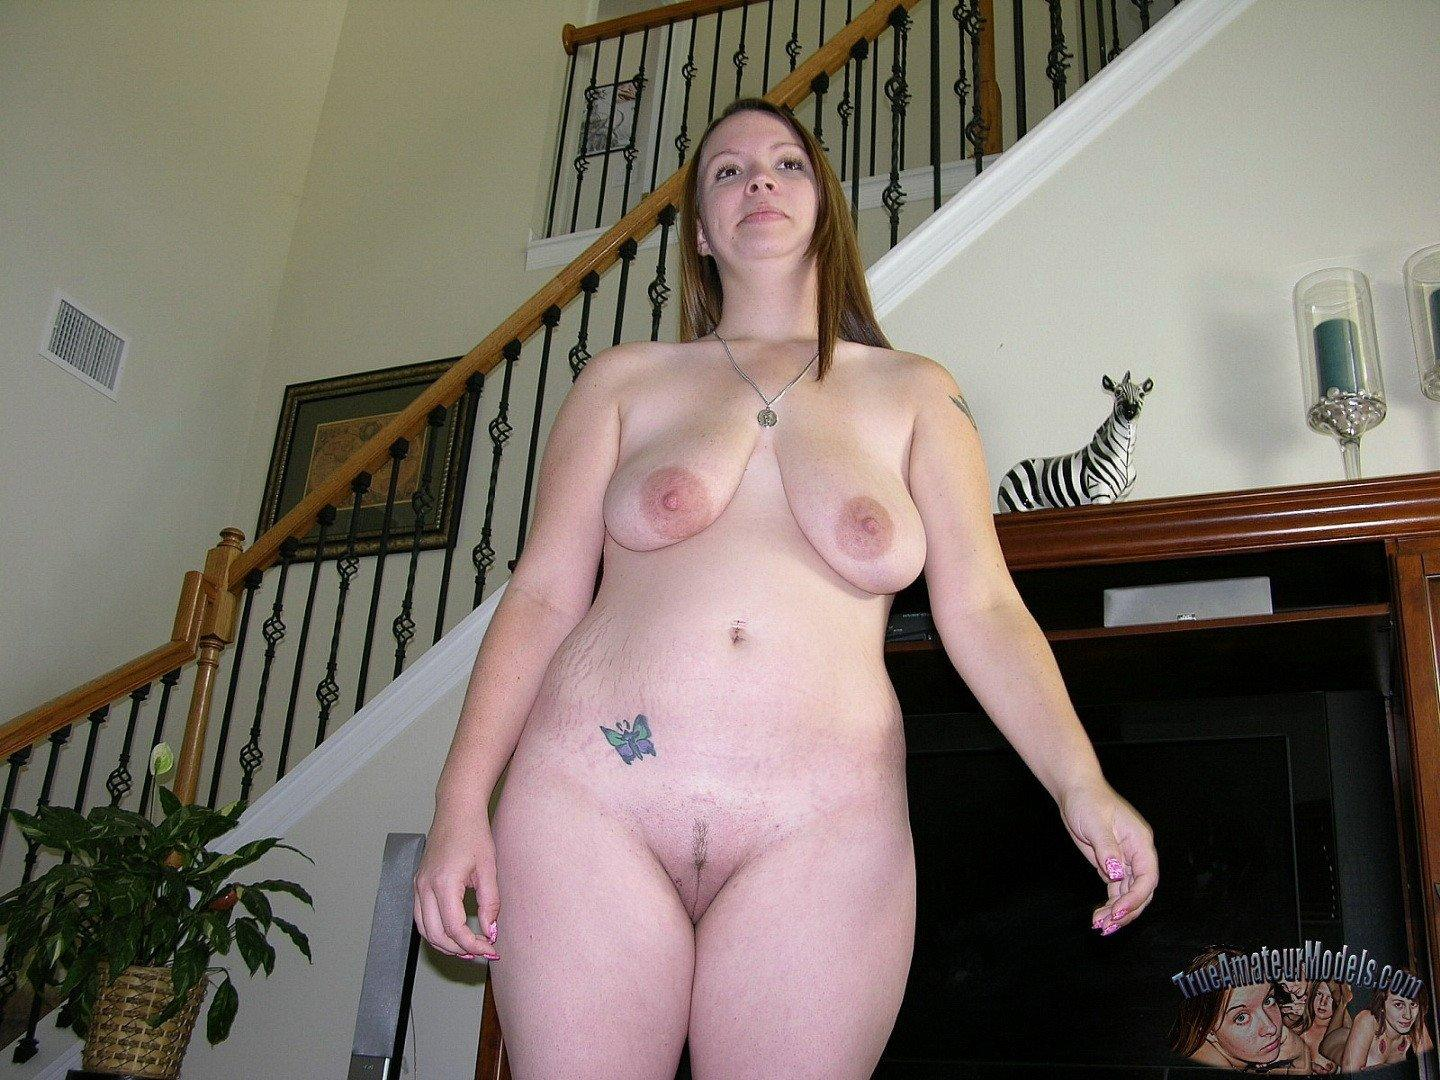 tits big chubby Amateur with women